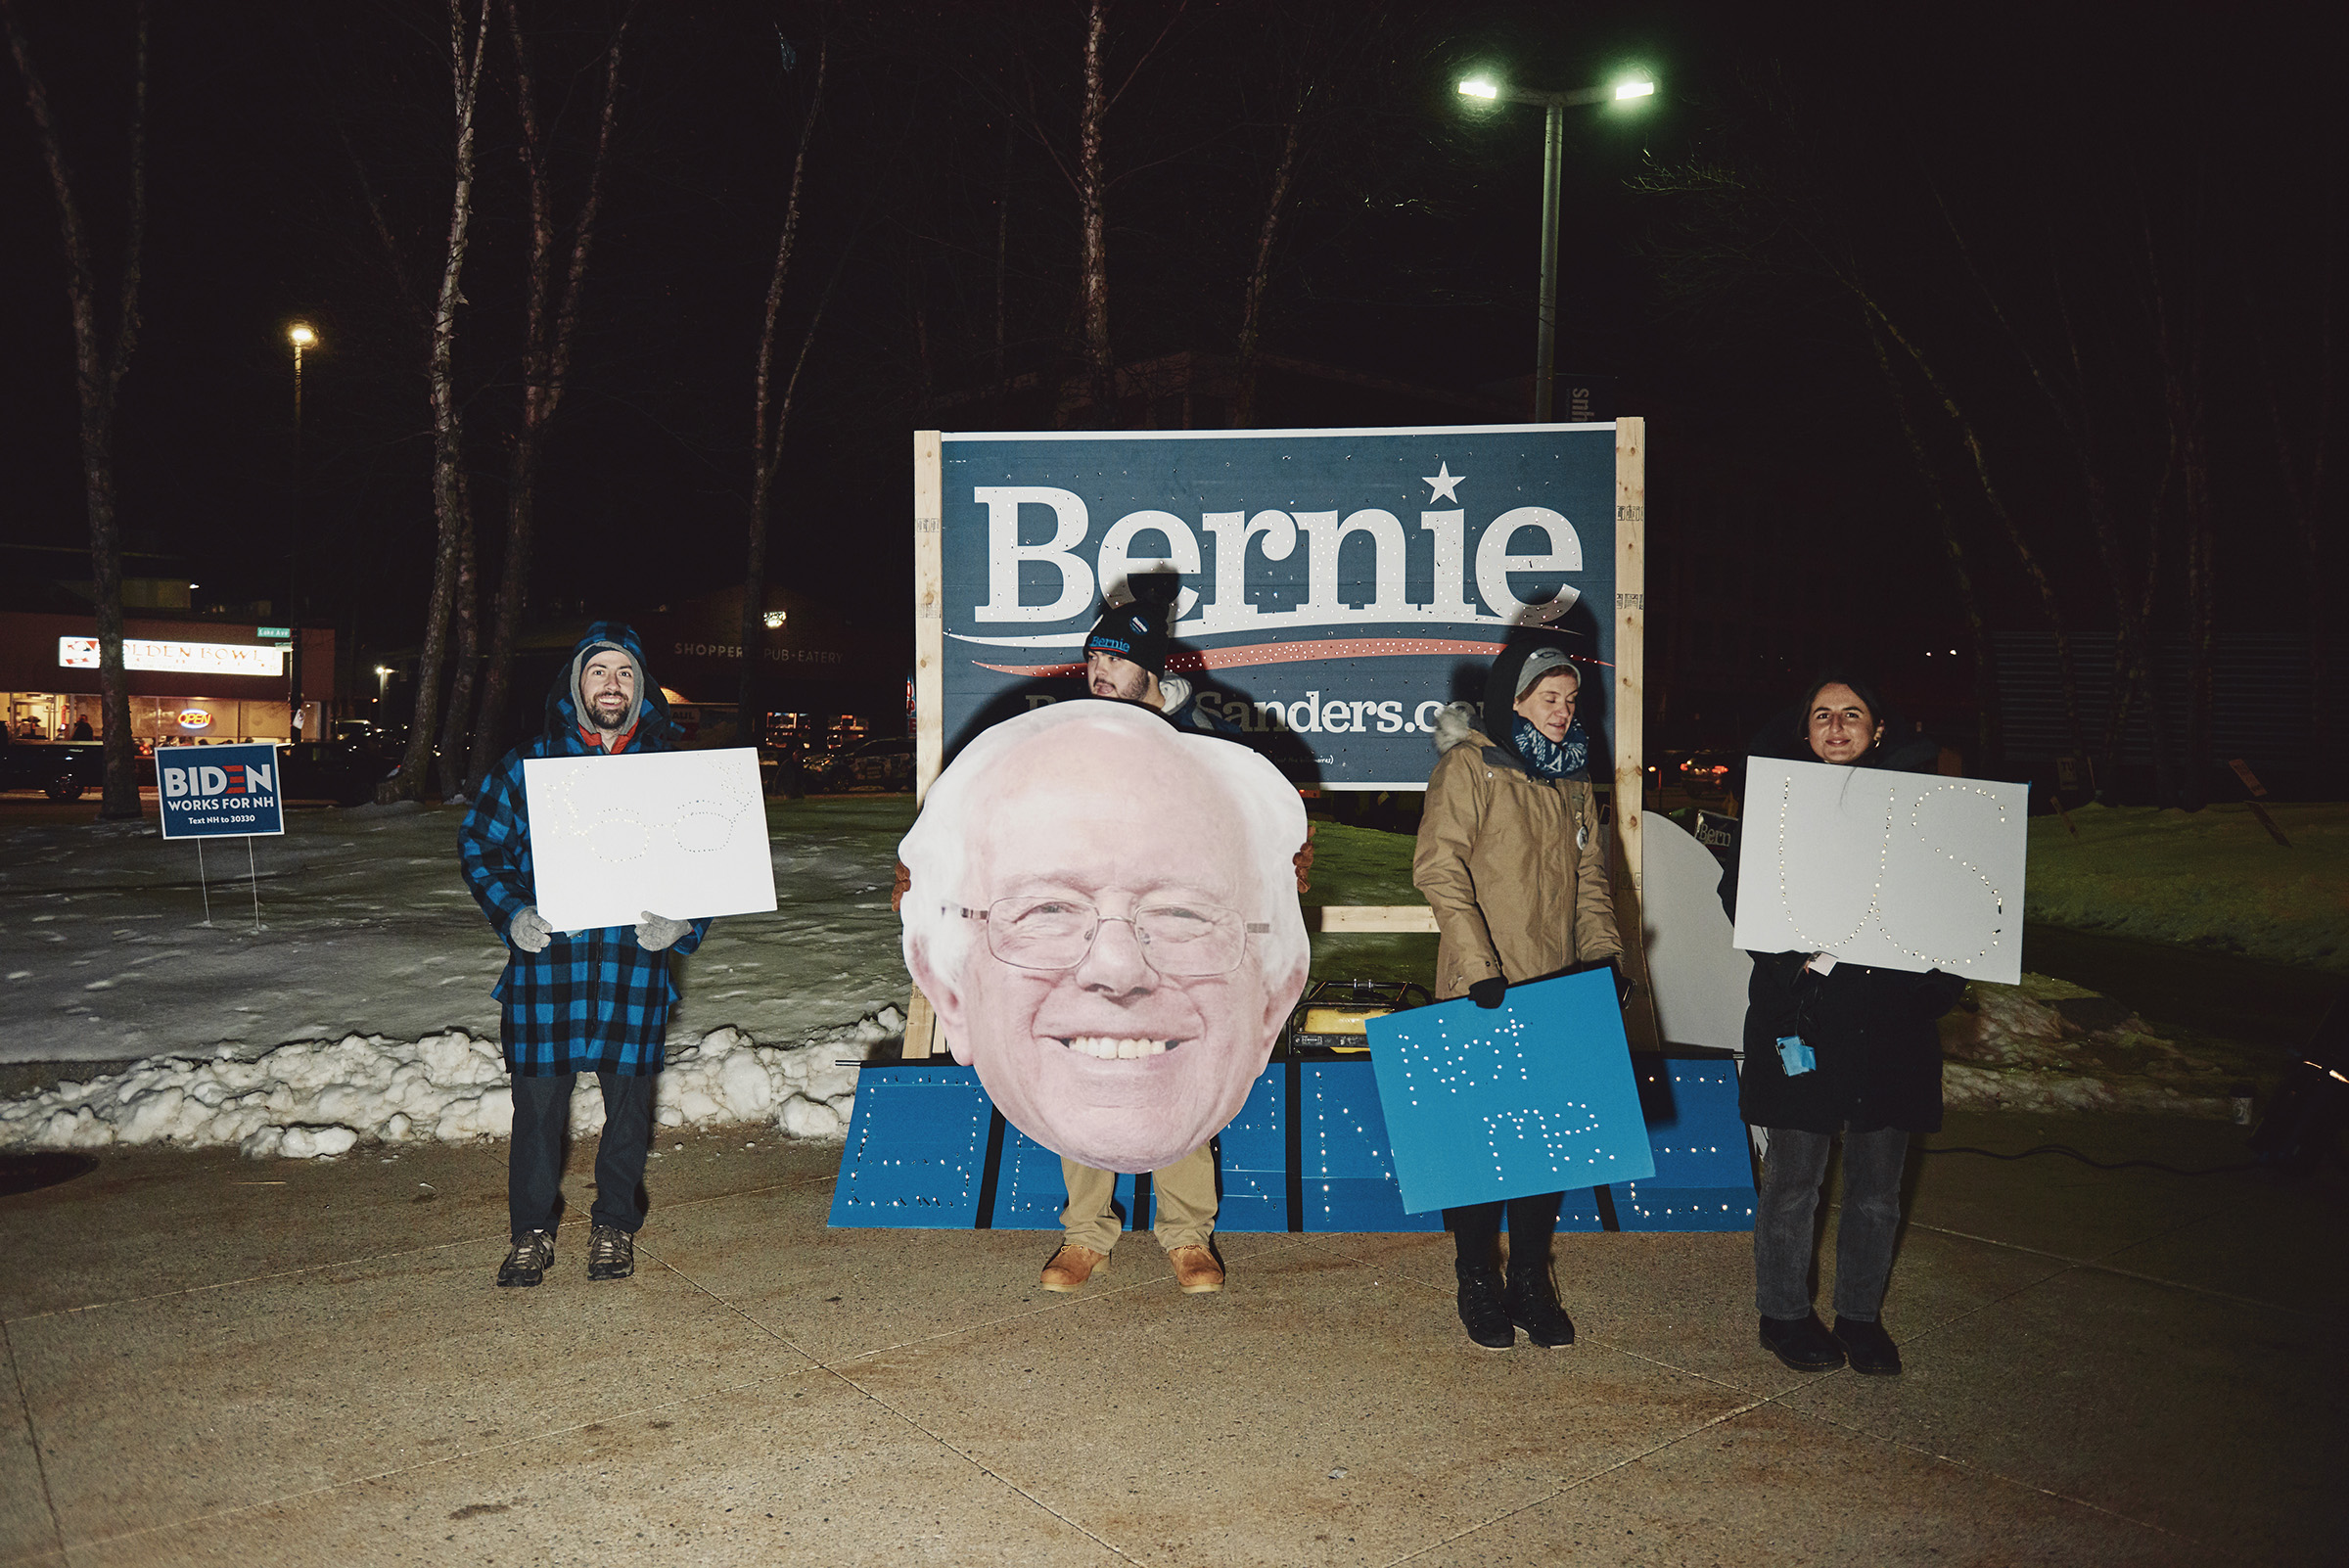 Bernie Sanders supporters outside of the New Hampshire Democratic Party's McIntyre-Shaheen 100 Club Event in Manchester, N.H. on Feb. 8, 2020.